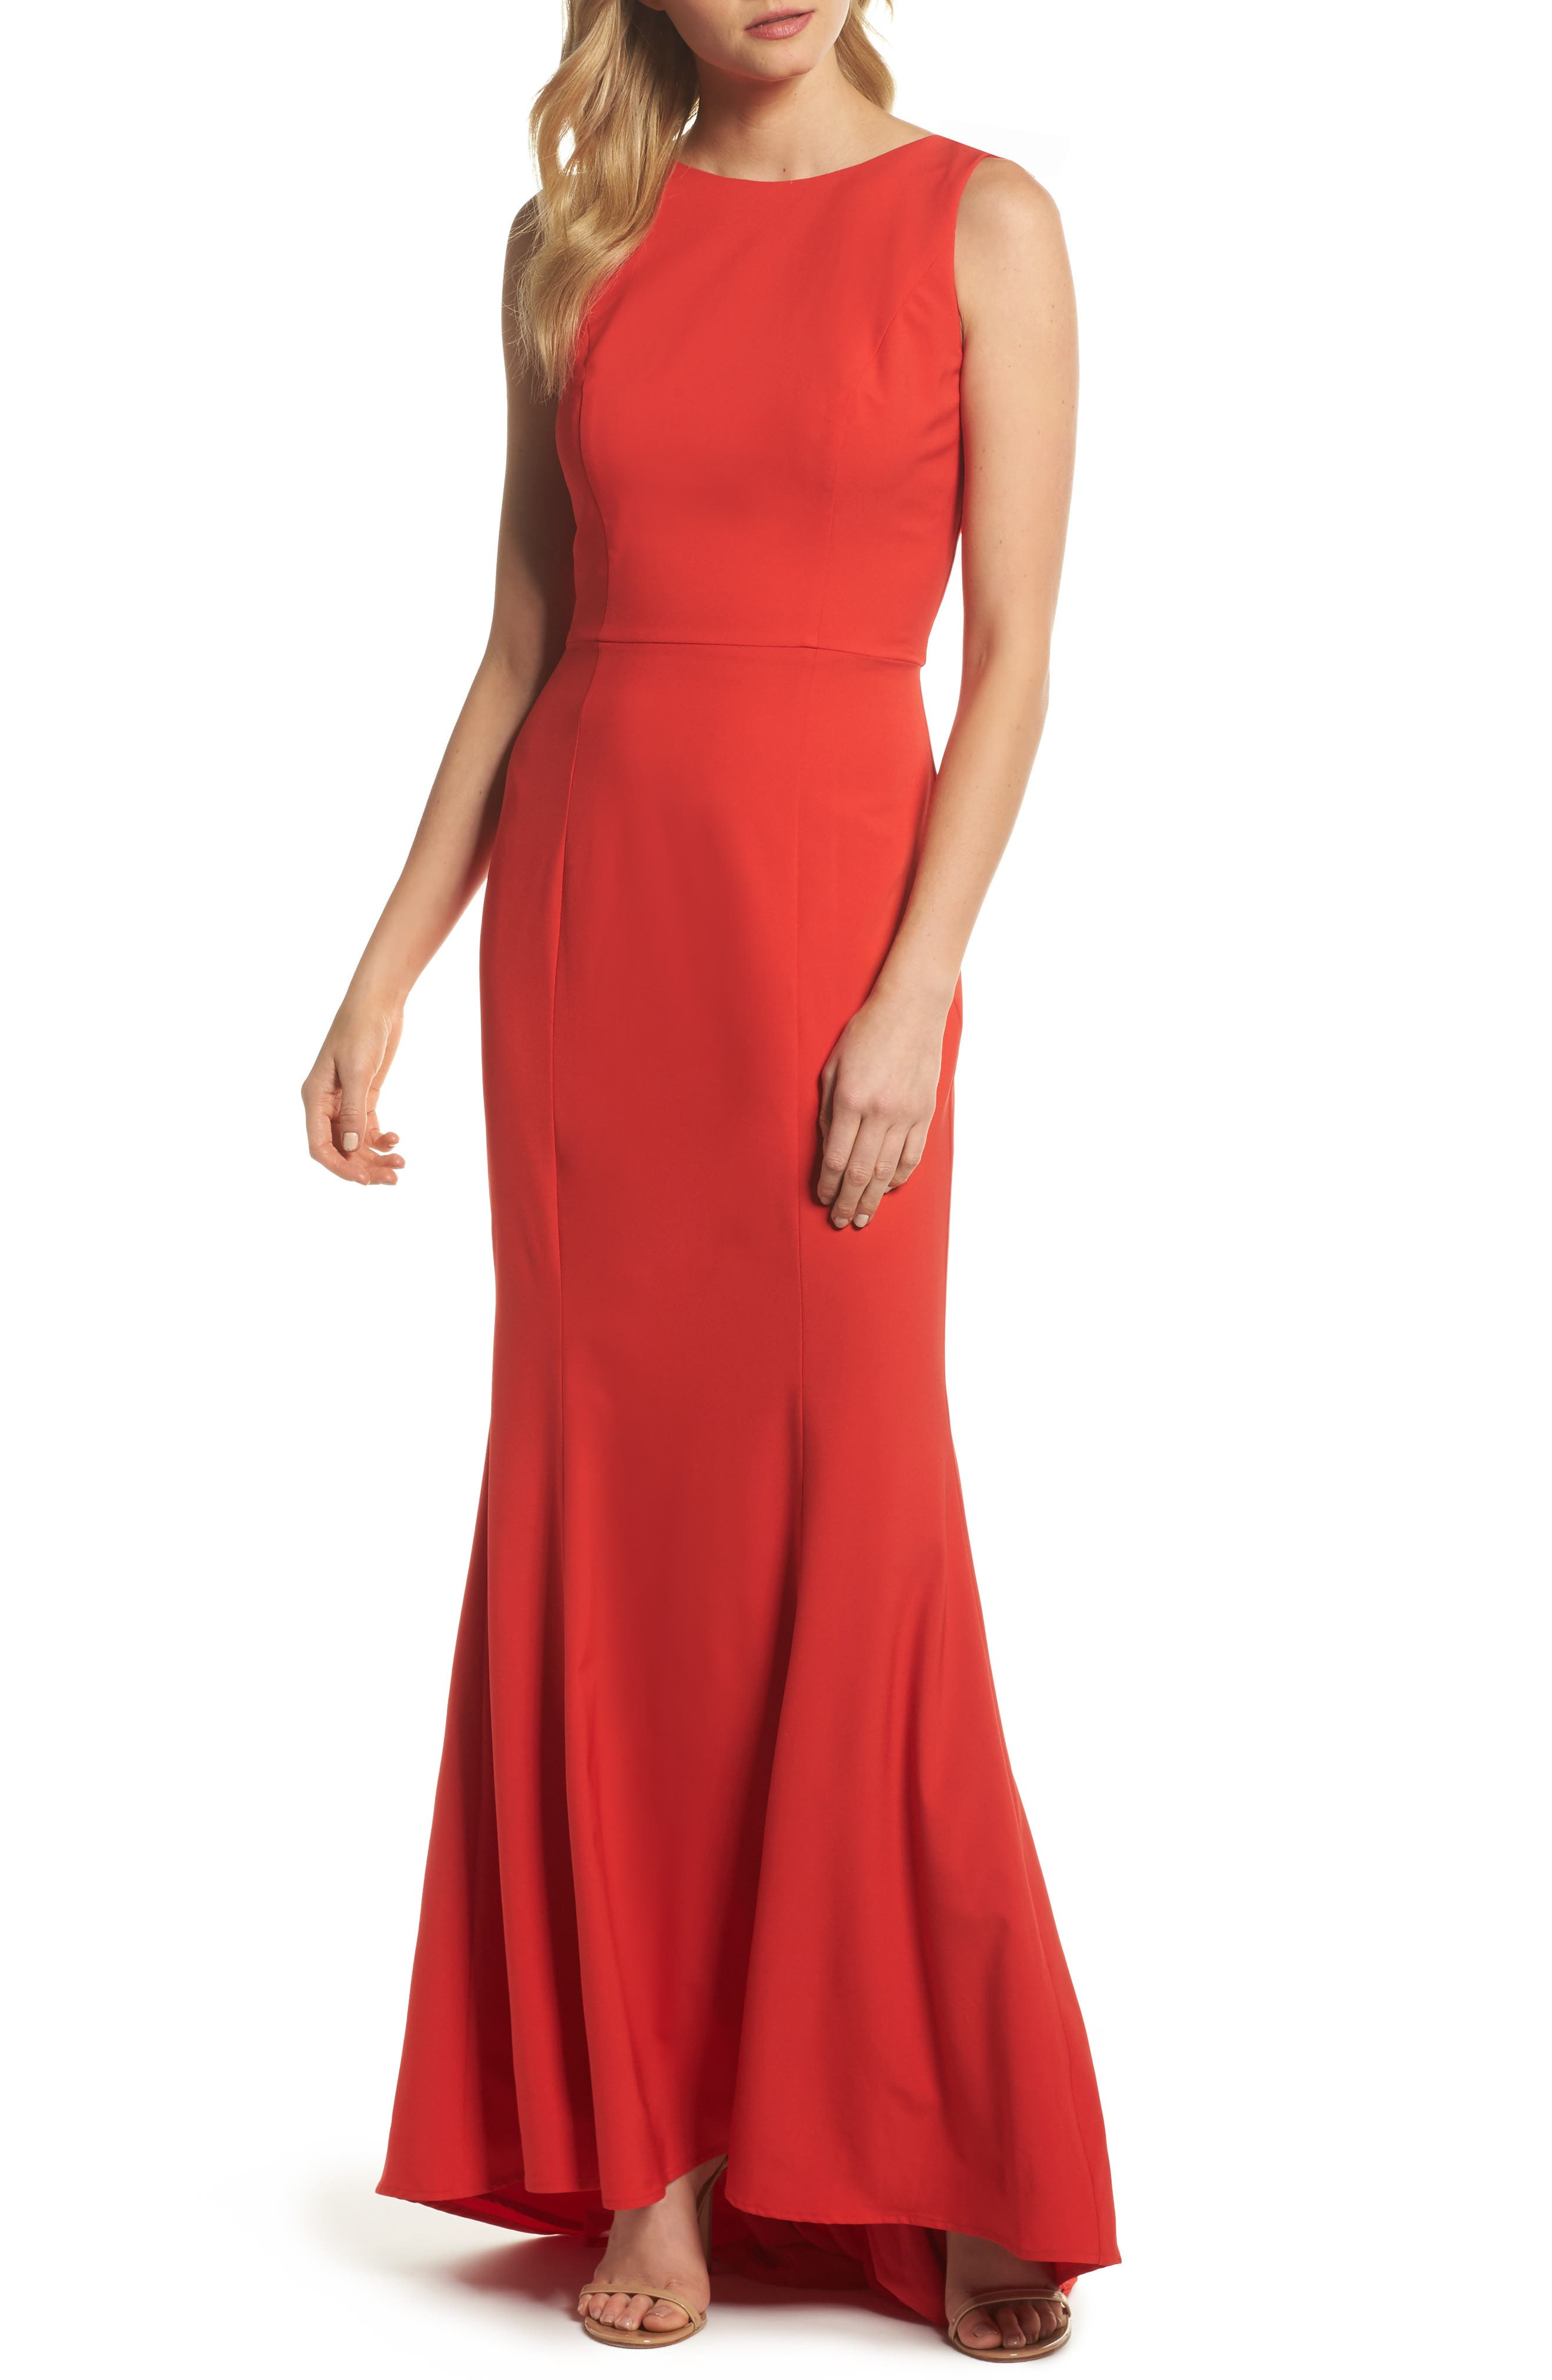 Jemima Ruffle Back Mermaid Gown,                             Main thumbnail 1, color,                             Red